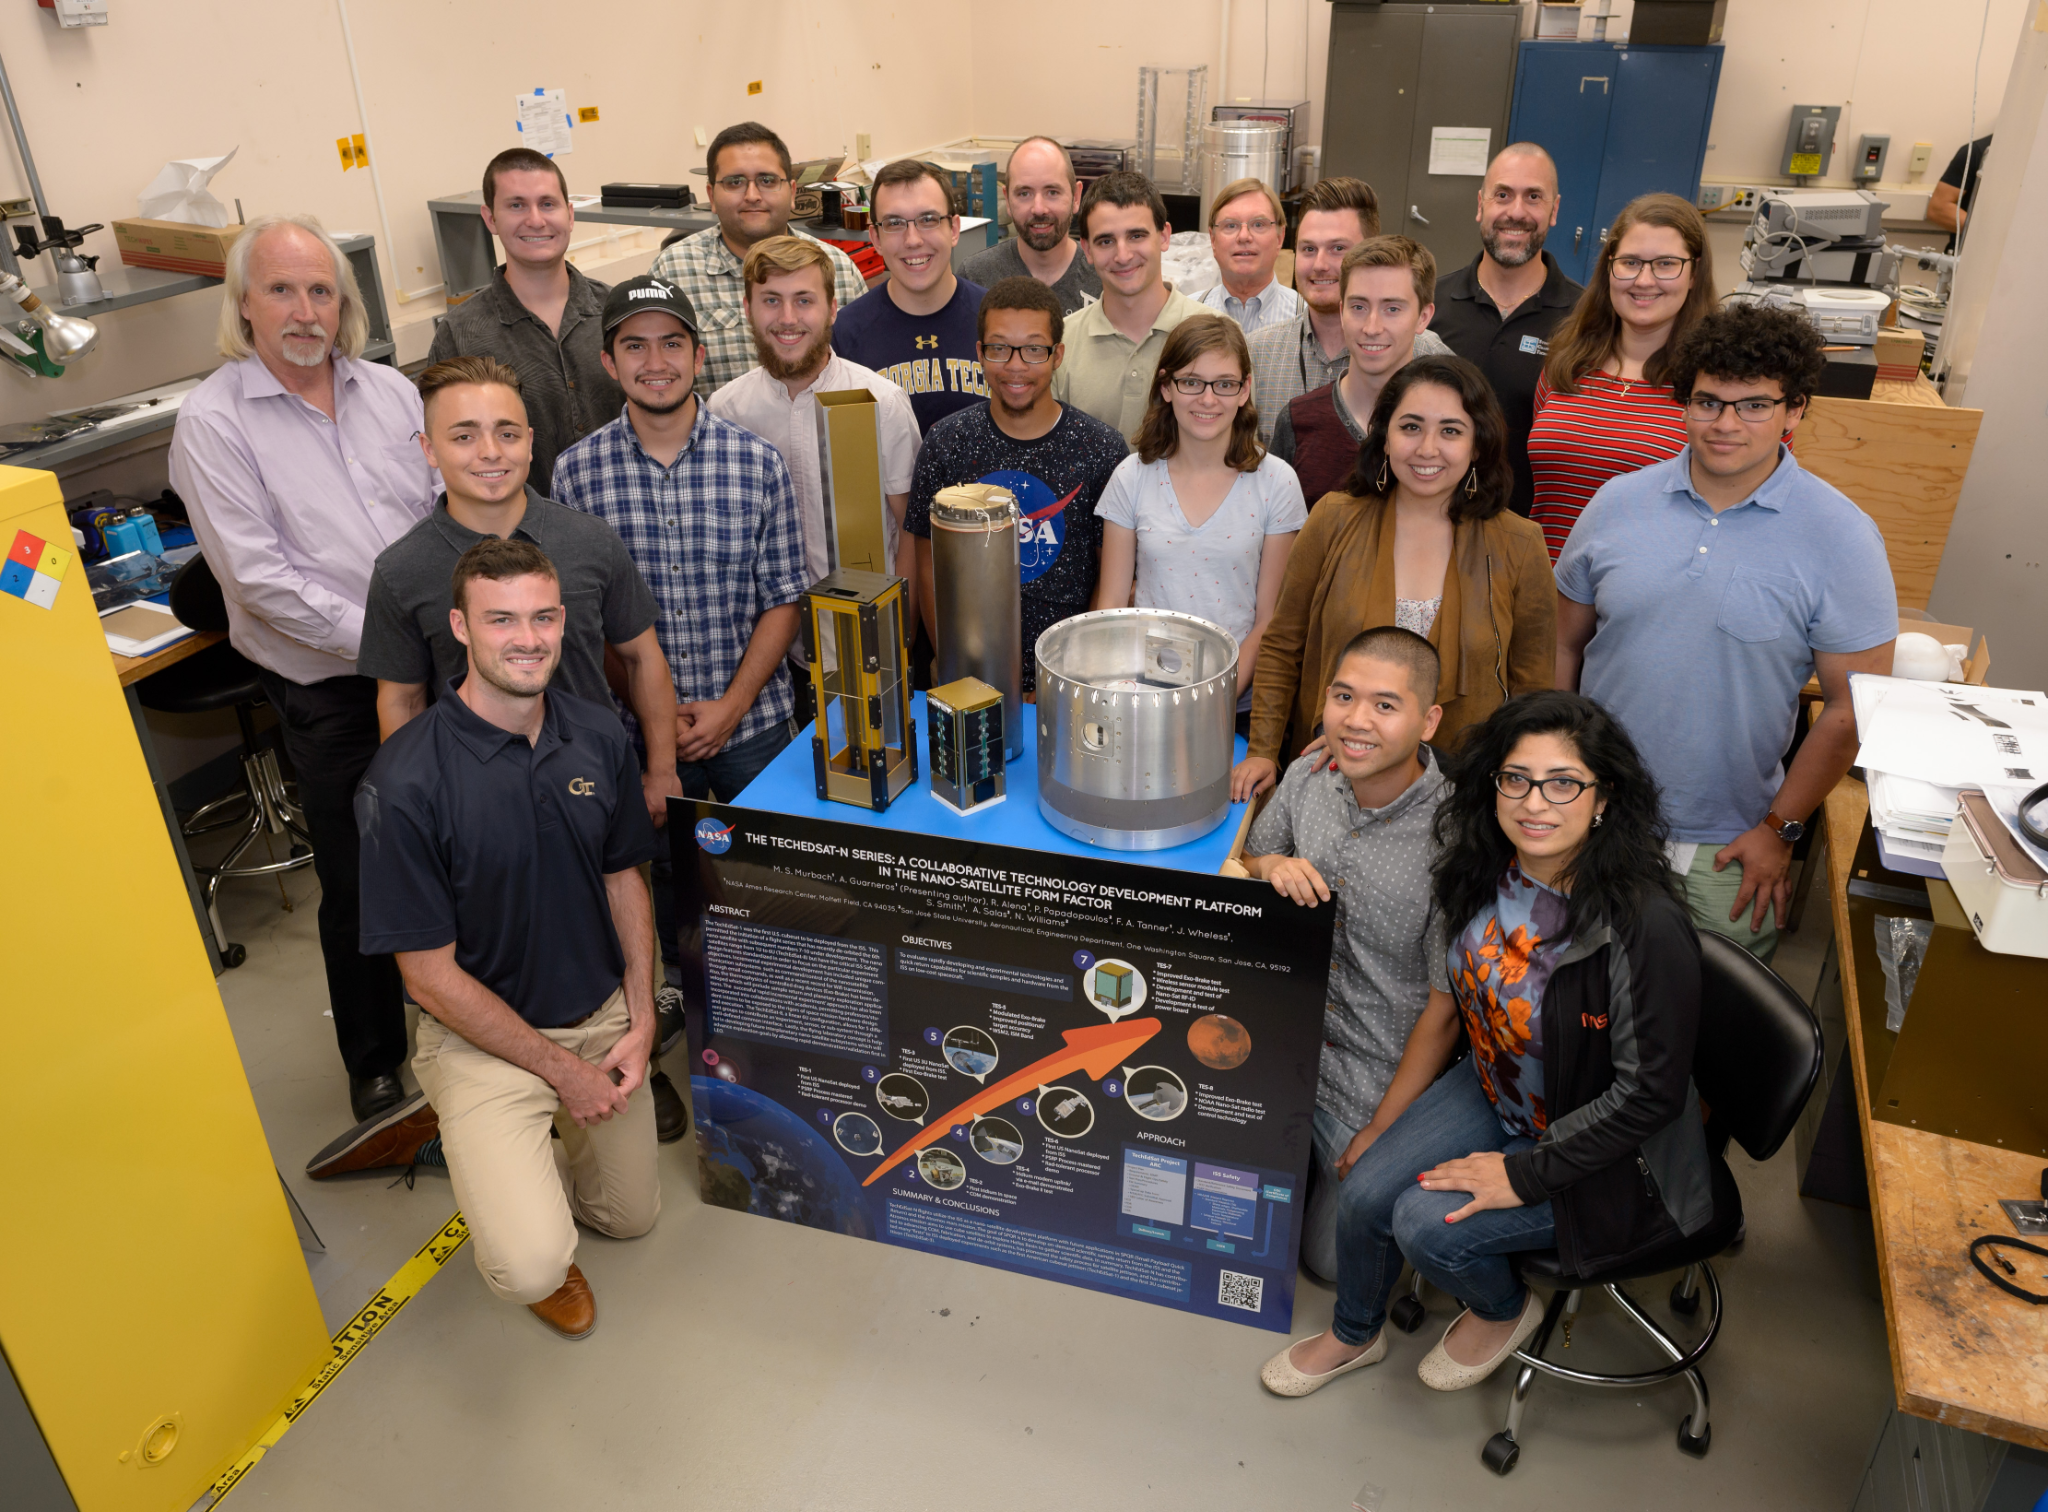 IMAGE:Ingersoll posing with the TechEdSat-8 Team (NASAAmes Research Center, Summer 2018)